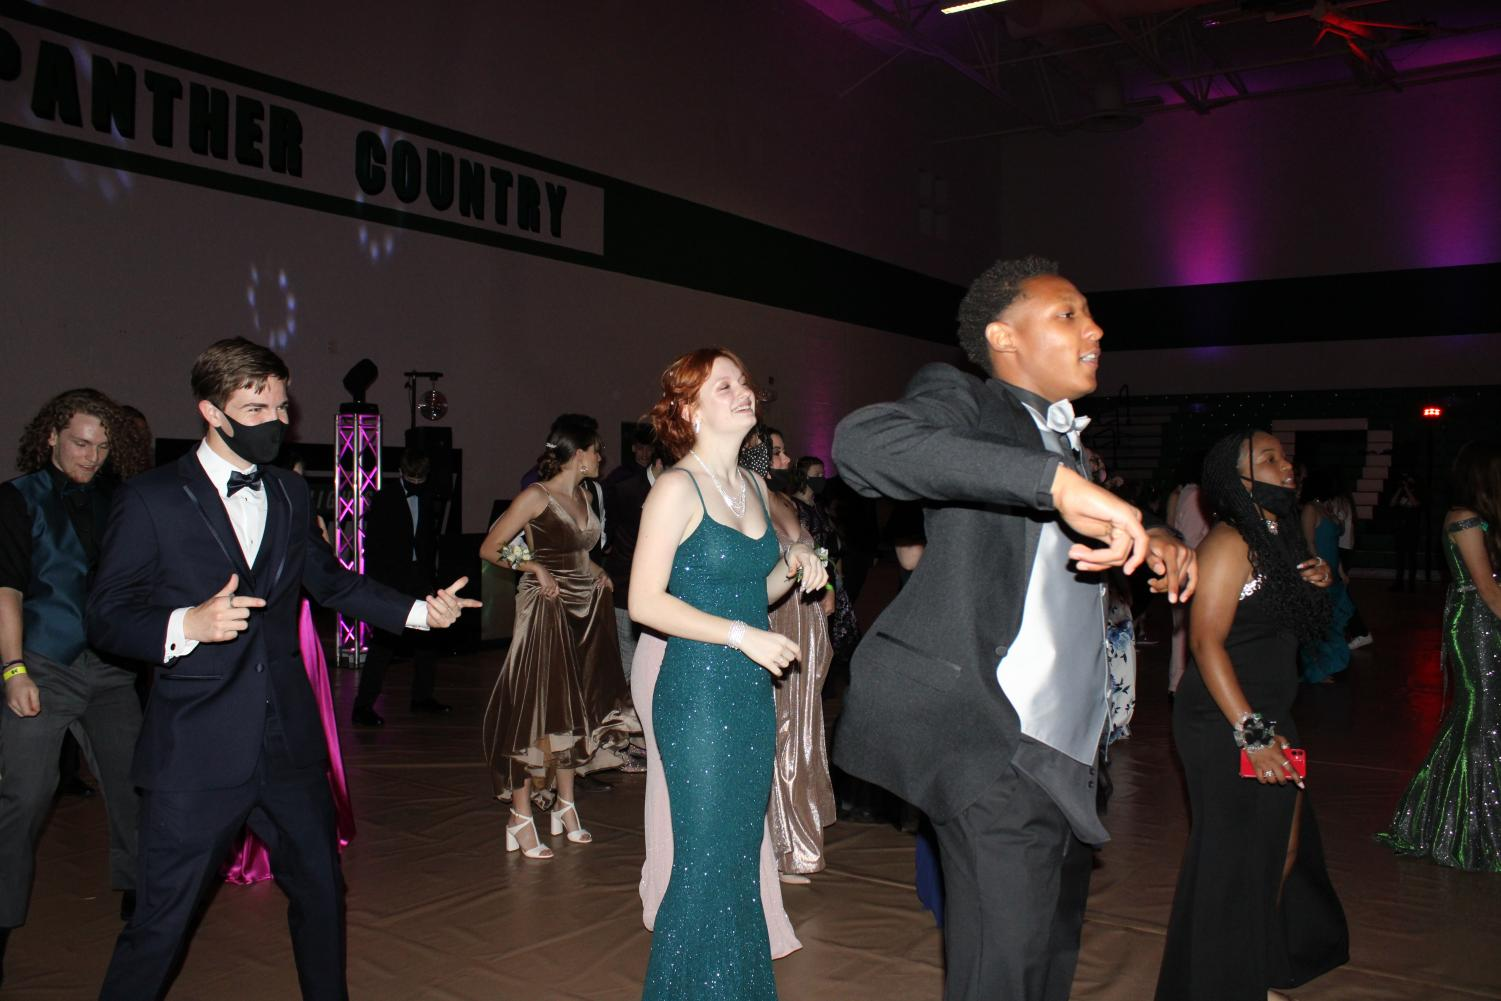 Prom+2021+%28Photos+by+Joselyn+Steele%29